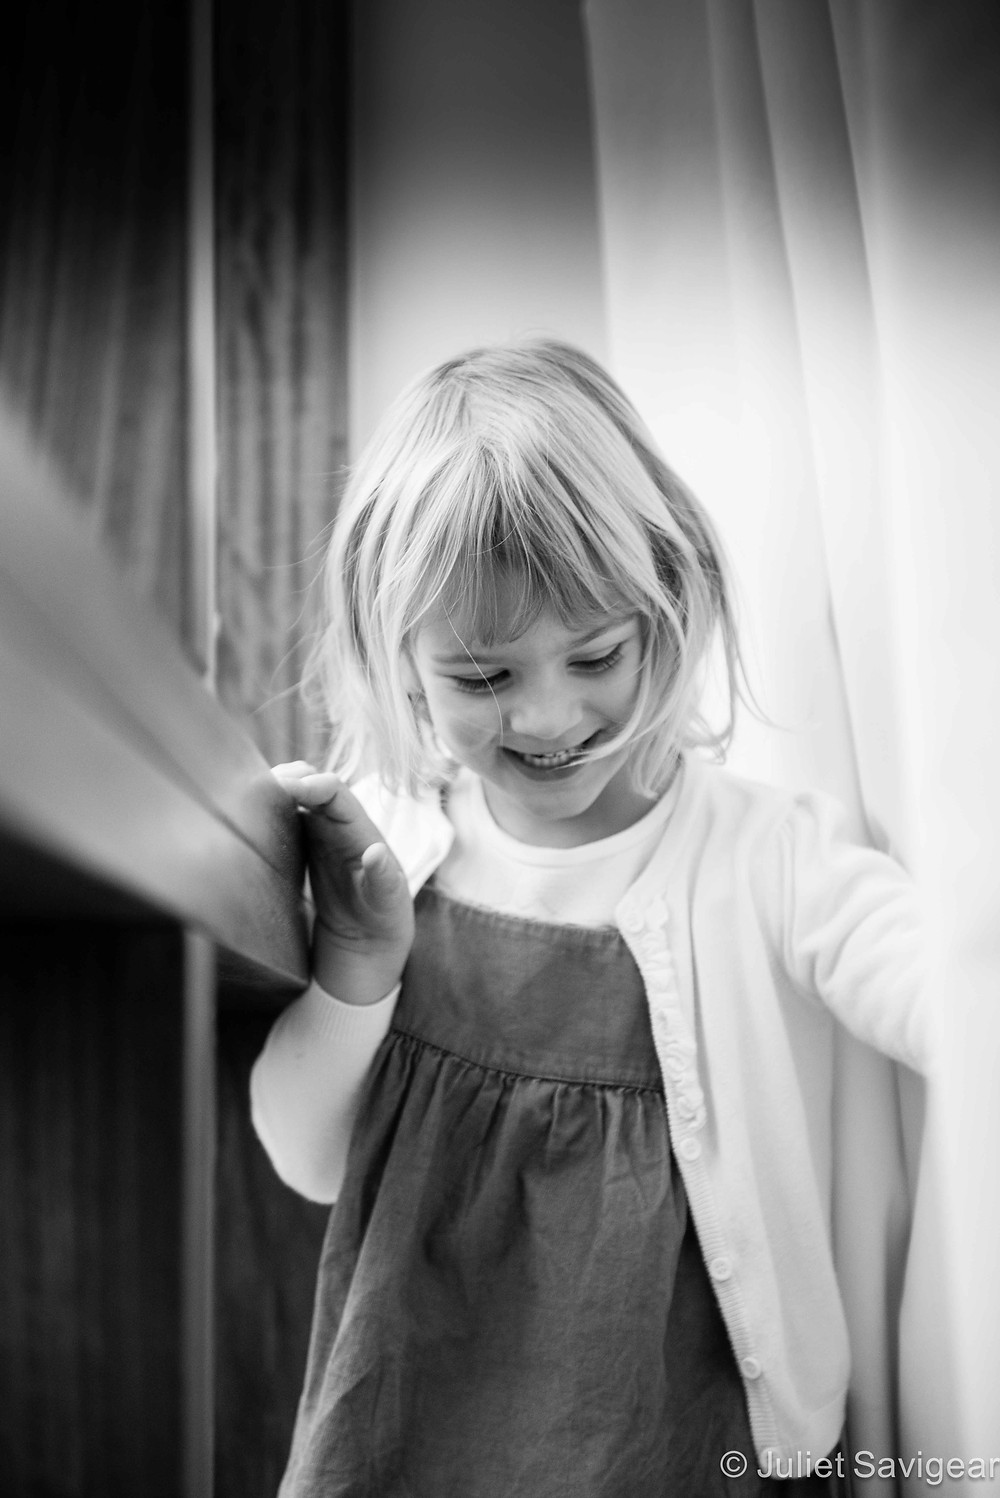 Is Monkey Behind The Curtain? Children's Photography, Purley